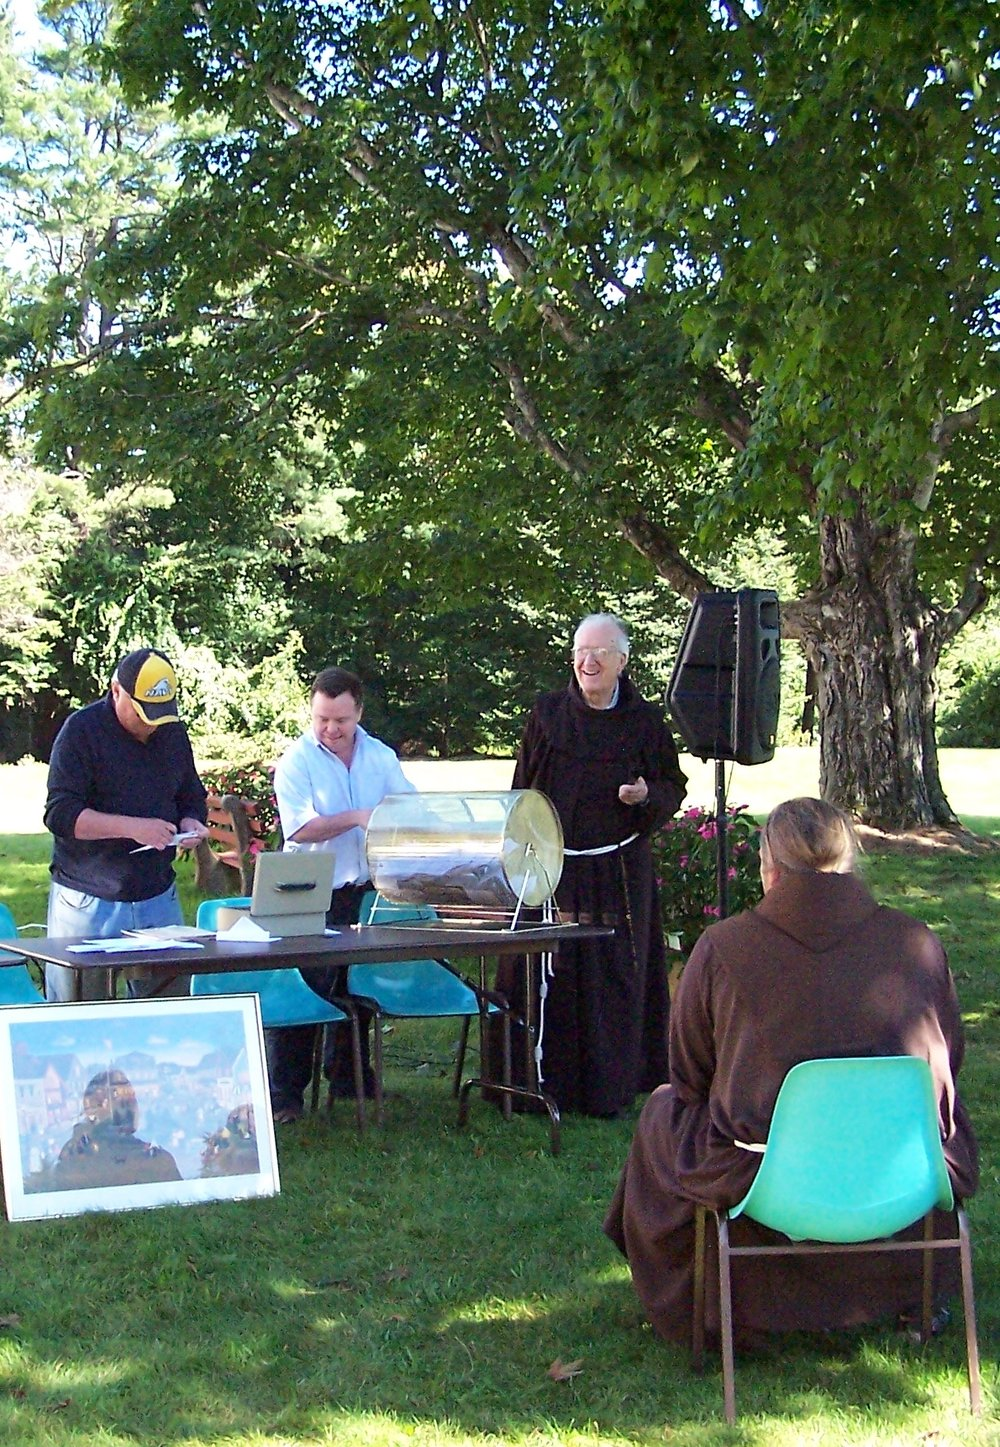 Labor Day Raffle Drawing & Picnic with Live Music - Sunday September 2, 2018The raffle tickets for the 17th Annual Summer Raffle are now available! To purchase tickets by mail, please fill out this FORM. Or tickets may be purchased after Mass on Sundays outside the Chapel entrance to St. Anthony's Monastery or at the Franciscan Guest House Monday through Friday 9 am to 5 pm. Payment by cash or check made out to the Franciscan Monastery.The Location for the annual raffle drawing and picnic is the Monastery lawn next to the Franciscan Guest House Hotel at 26 Beach Ave, Kennebunk ME 04064, 207-967-4865.Everyone is invited to enjoy one of the last days of summer on the Franciscan Monastery grounds with a picnic and free live music (TBD). Bring your own bag lunch or buy a picnic lunch provided by the Franciscan Guest House.Drawing of the winning raffle tickets will start at 1 pm on Sunday of Labor Day Weekend. Grand Prize was $5,000 in 2018 with many other prizes. All proceeds benefit the upkeep of the Franciscan Monastery. Raffle tickets may be purchased for $50 at the Franciscan Guest House weekdays, 9 am to 5 pm or after Sunday Mass starting in June or using the at raffle form. Tickets subject to availability. Please call 207-967-4865 to check ticket availability before mailing in raffle ticket order forms.